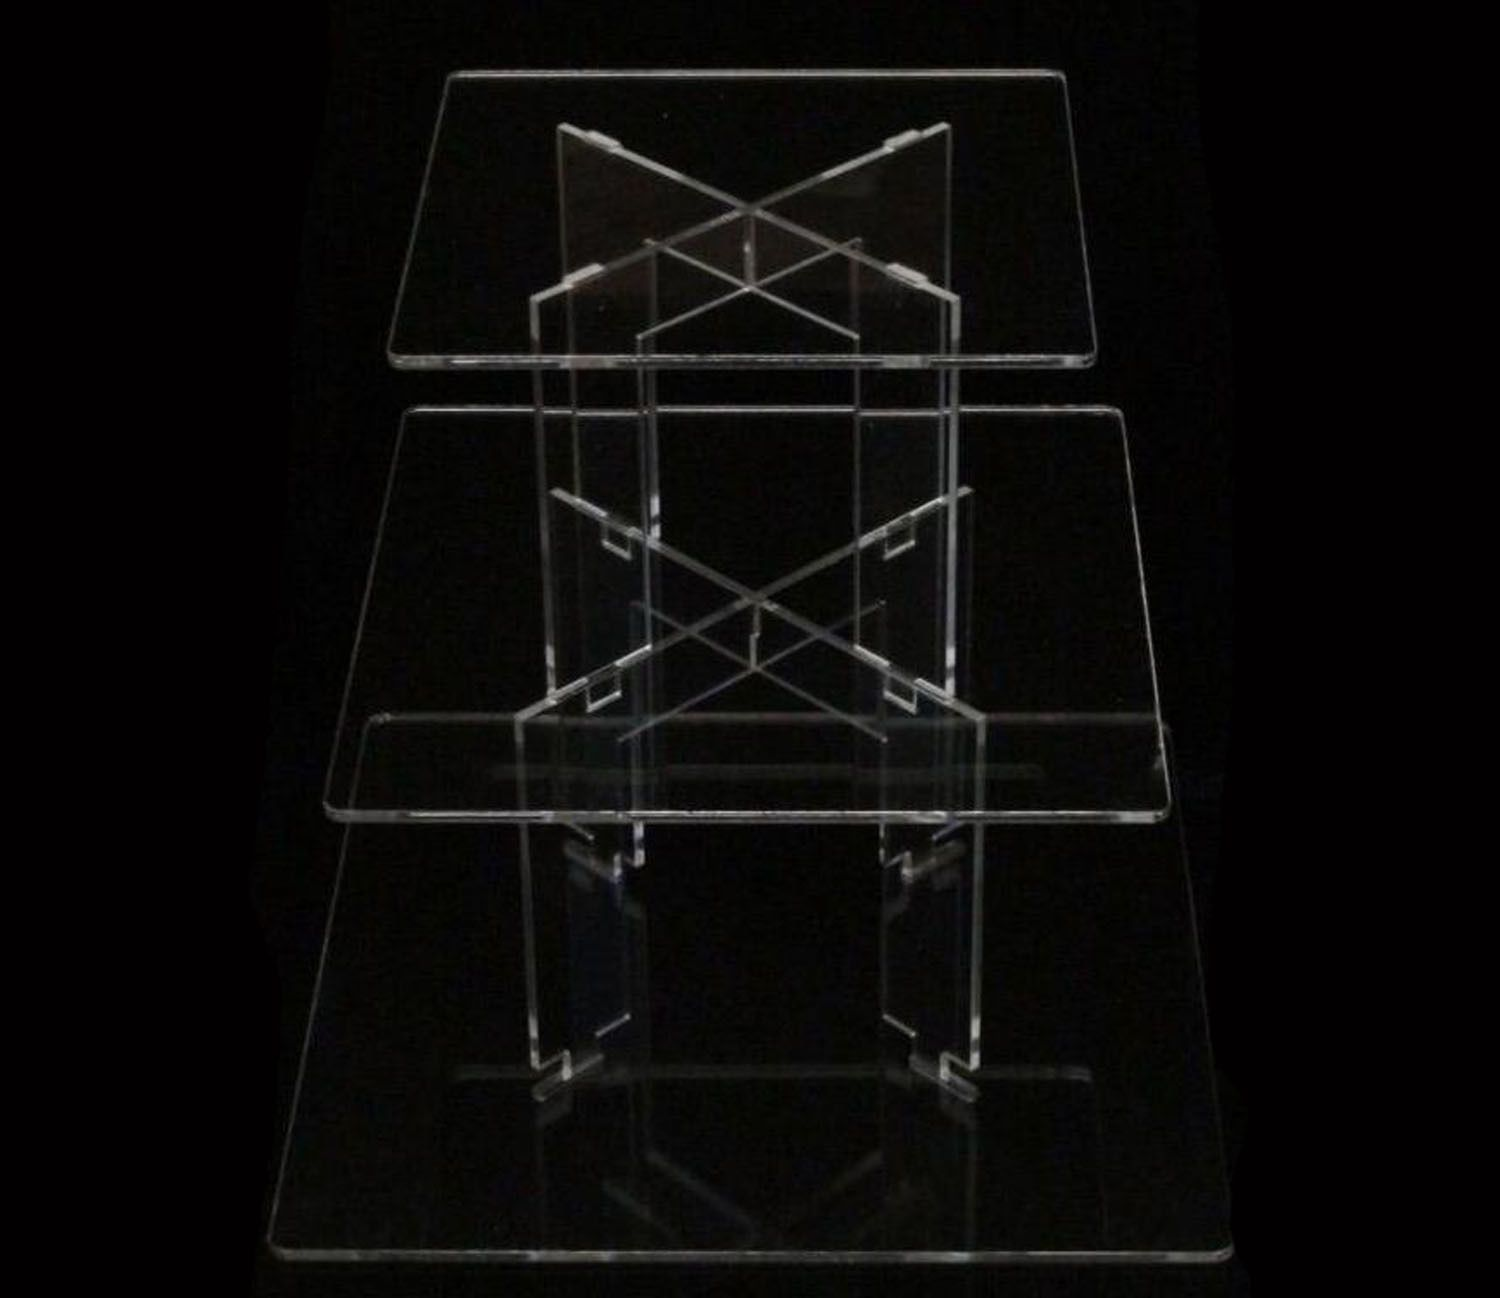 Tk tier square clear acrylic cupcake party wedding cake display